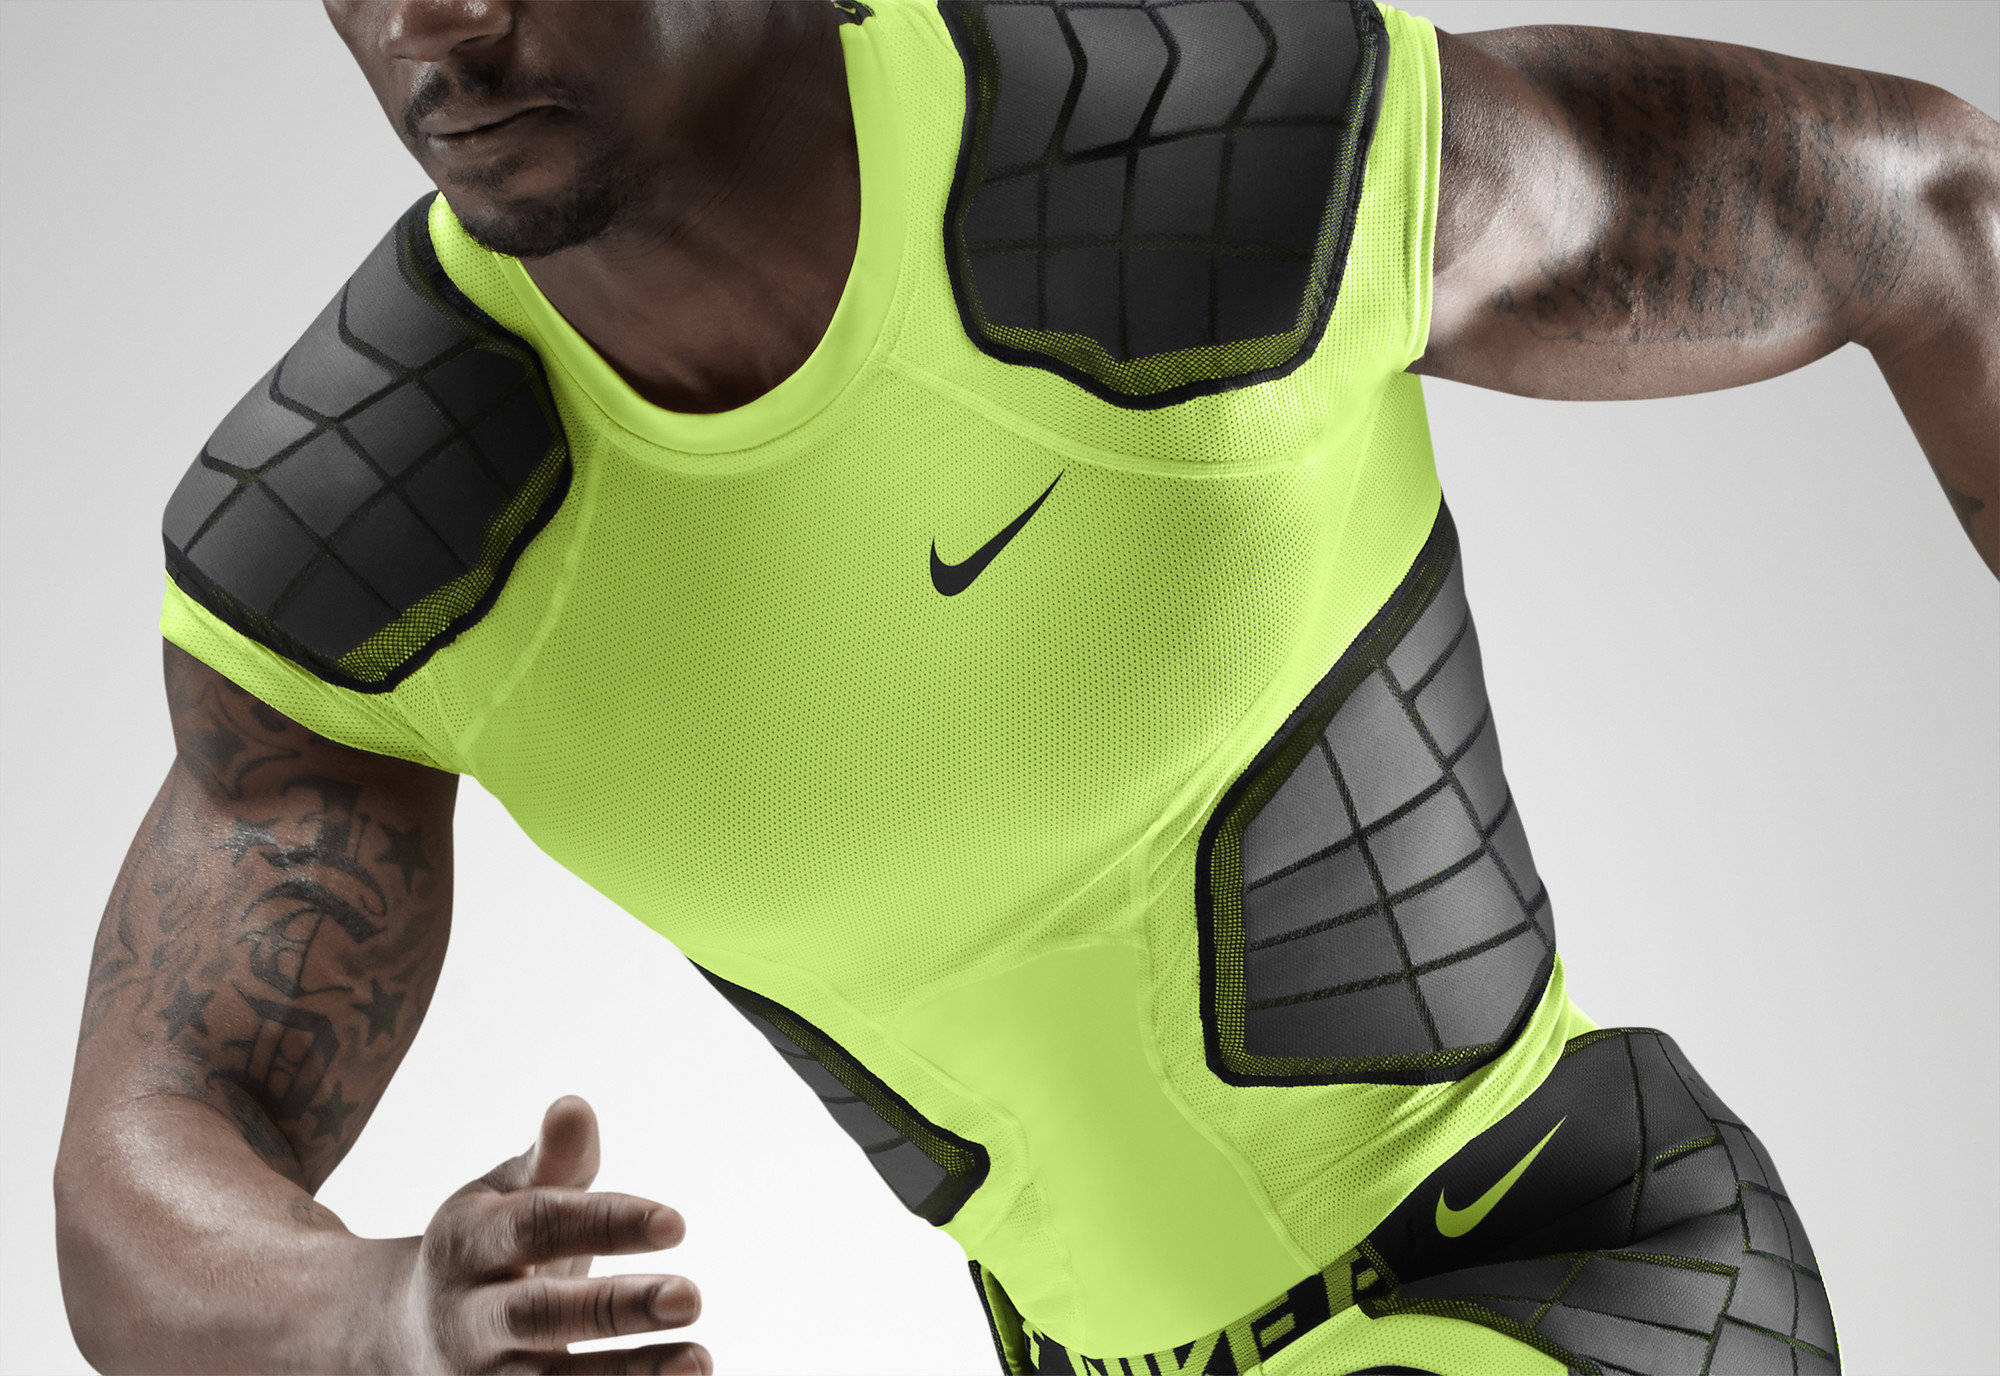 Nike Pro Hyperstrong Taking Impact Protection To The Next